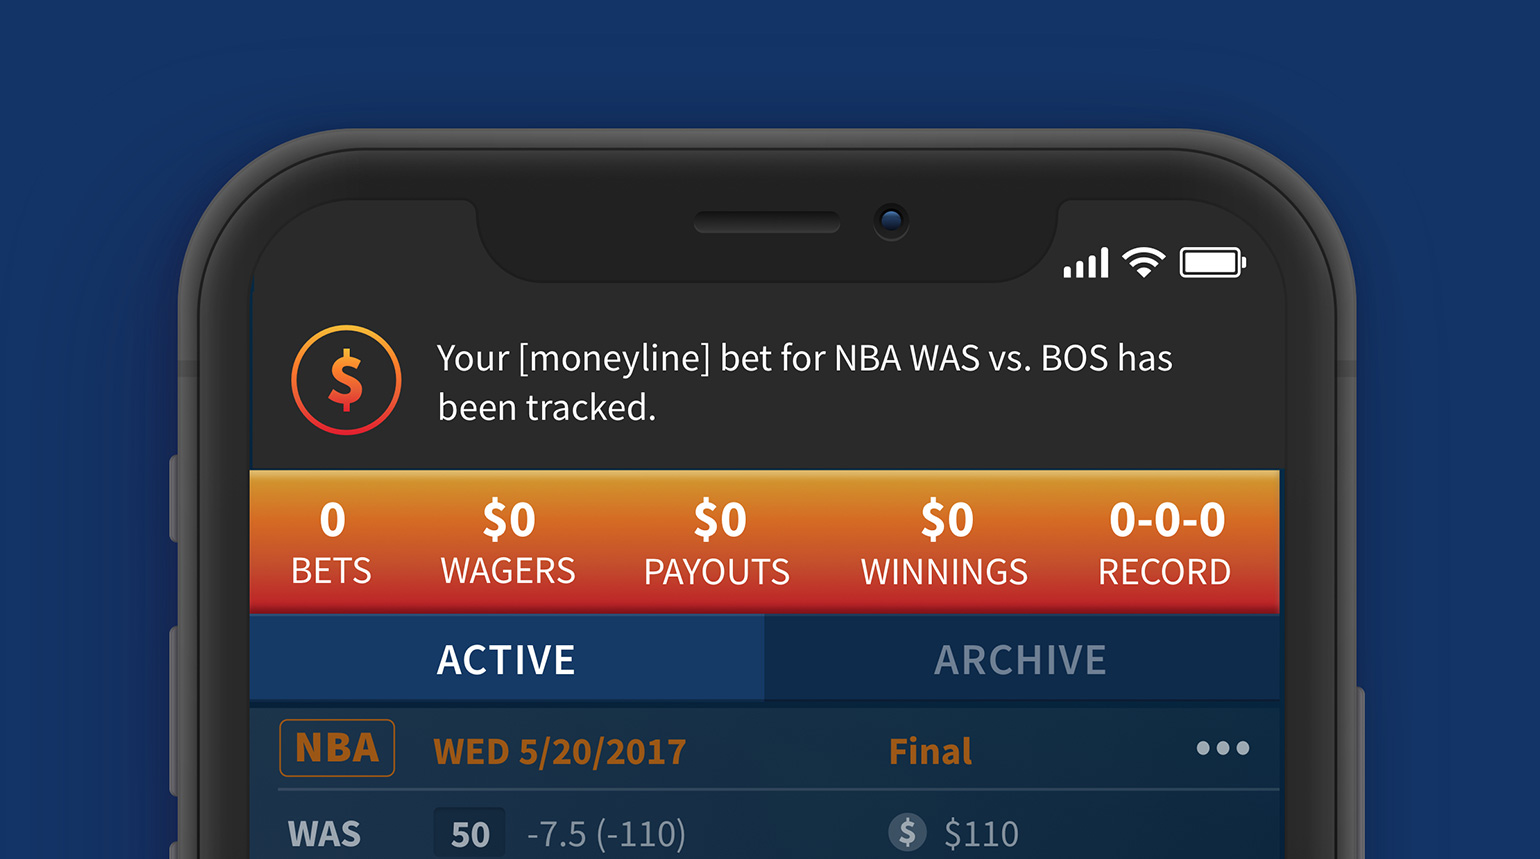 In-app notifications for real time bet tracking.